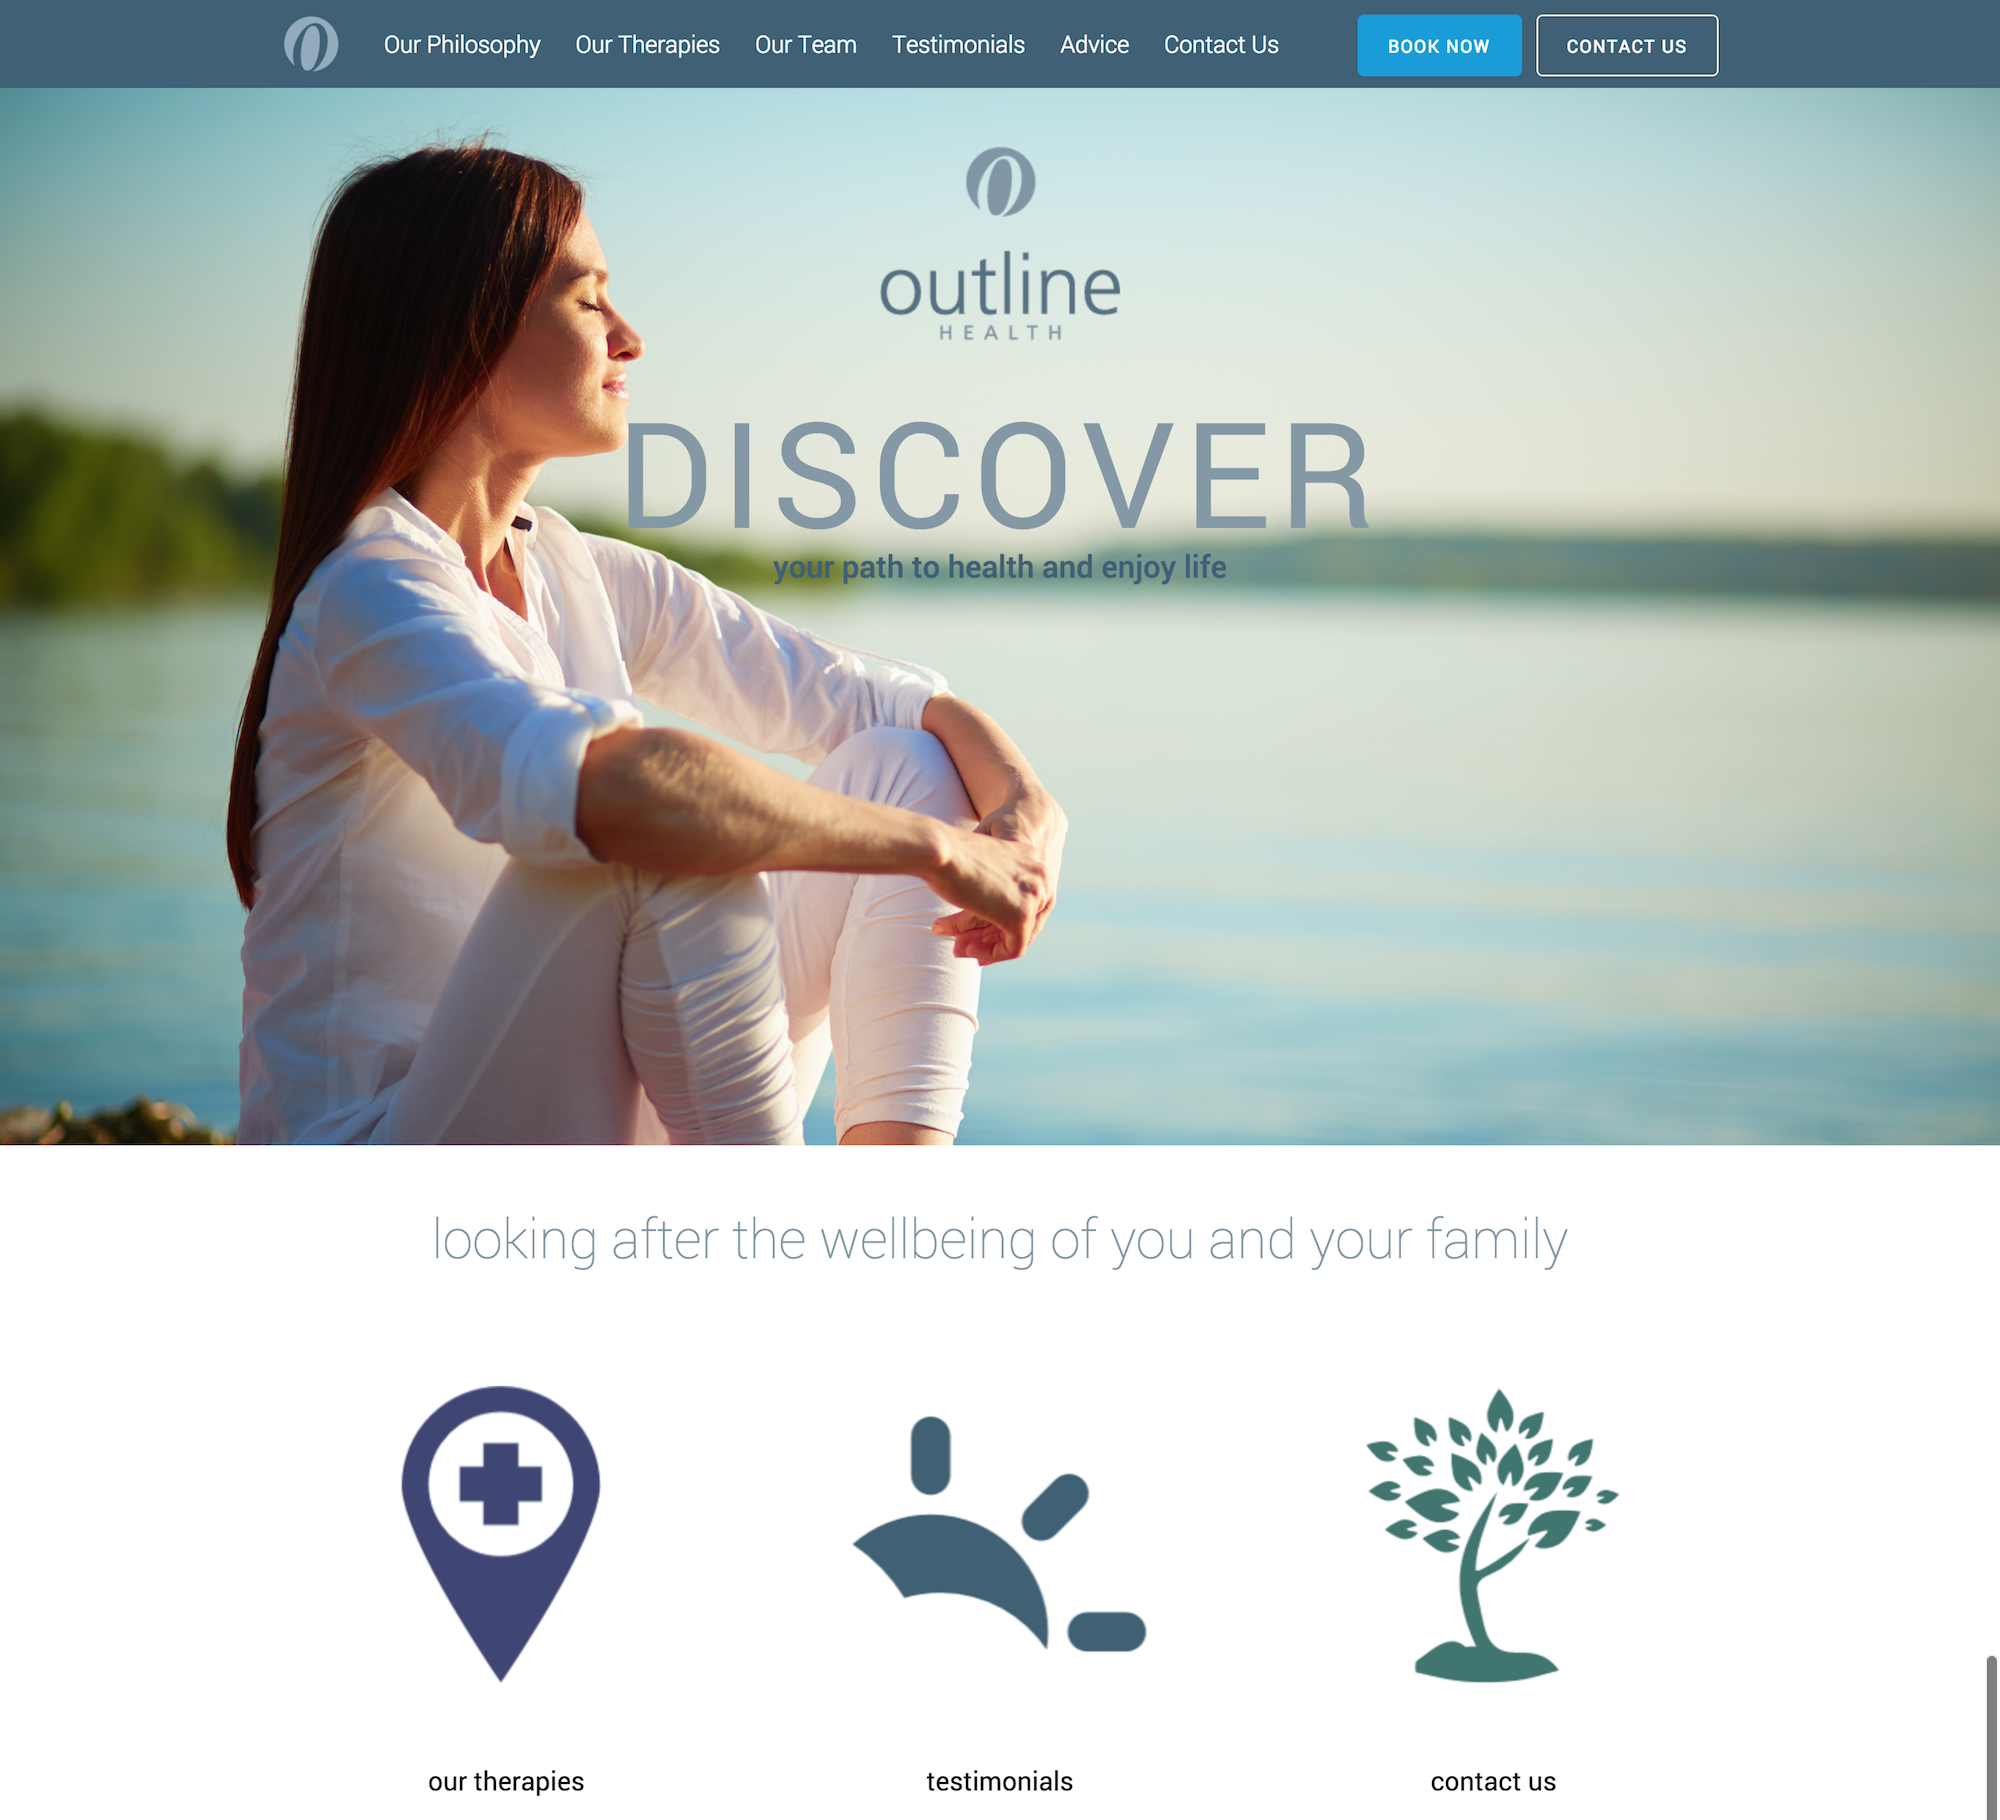 Outline Health   Looking after the wellbeing of you and your family